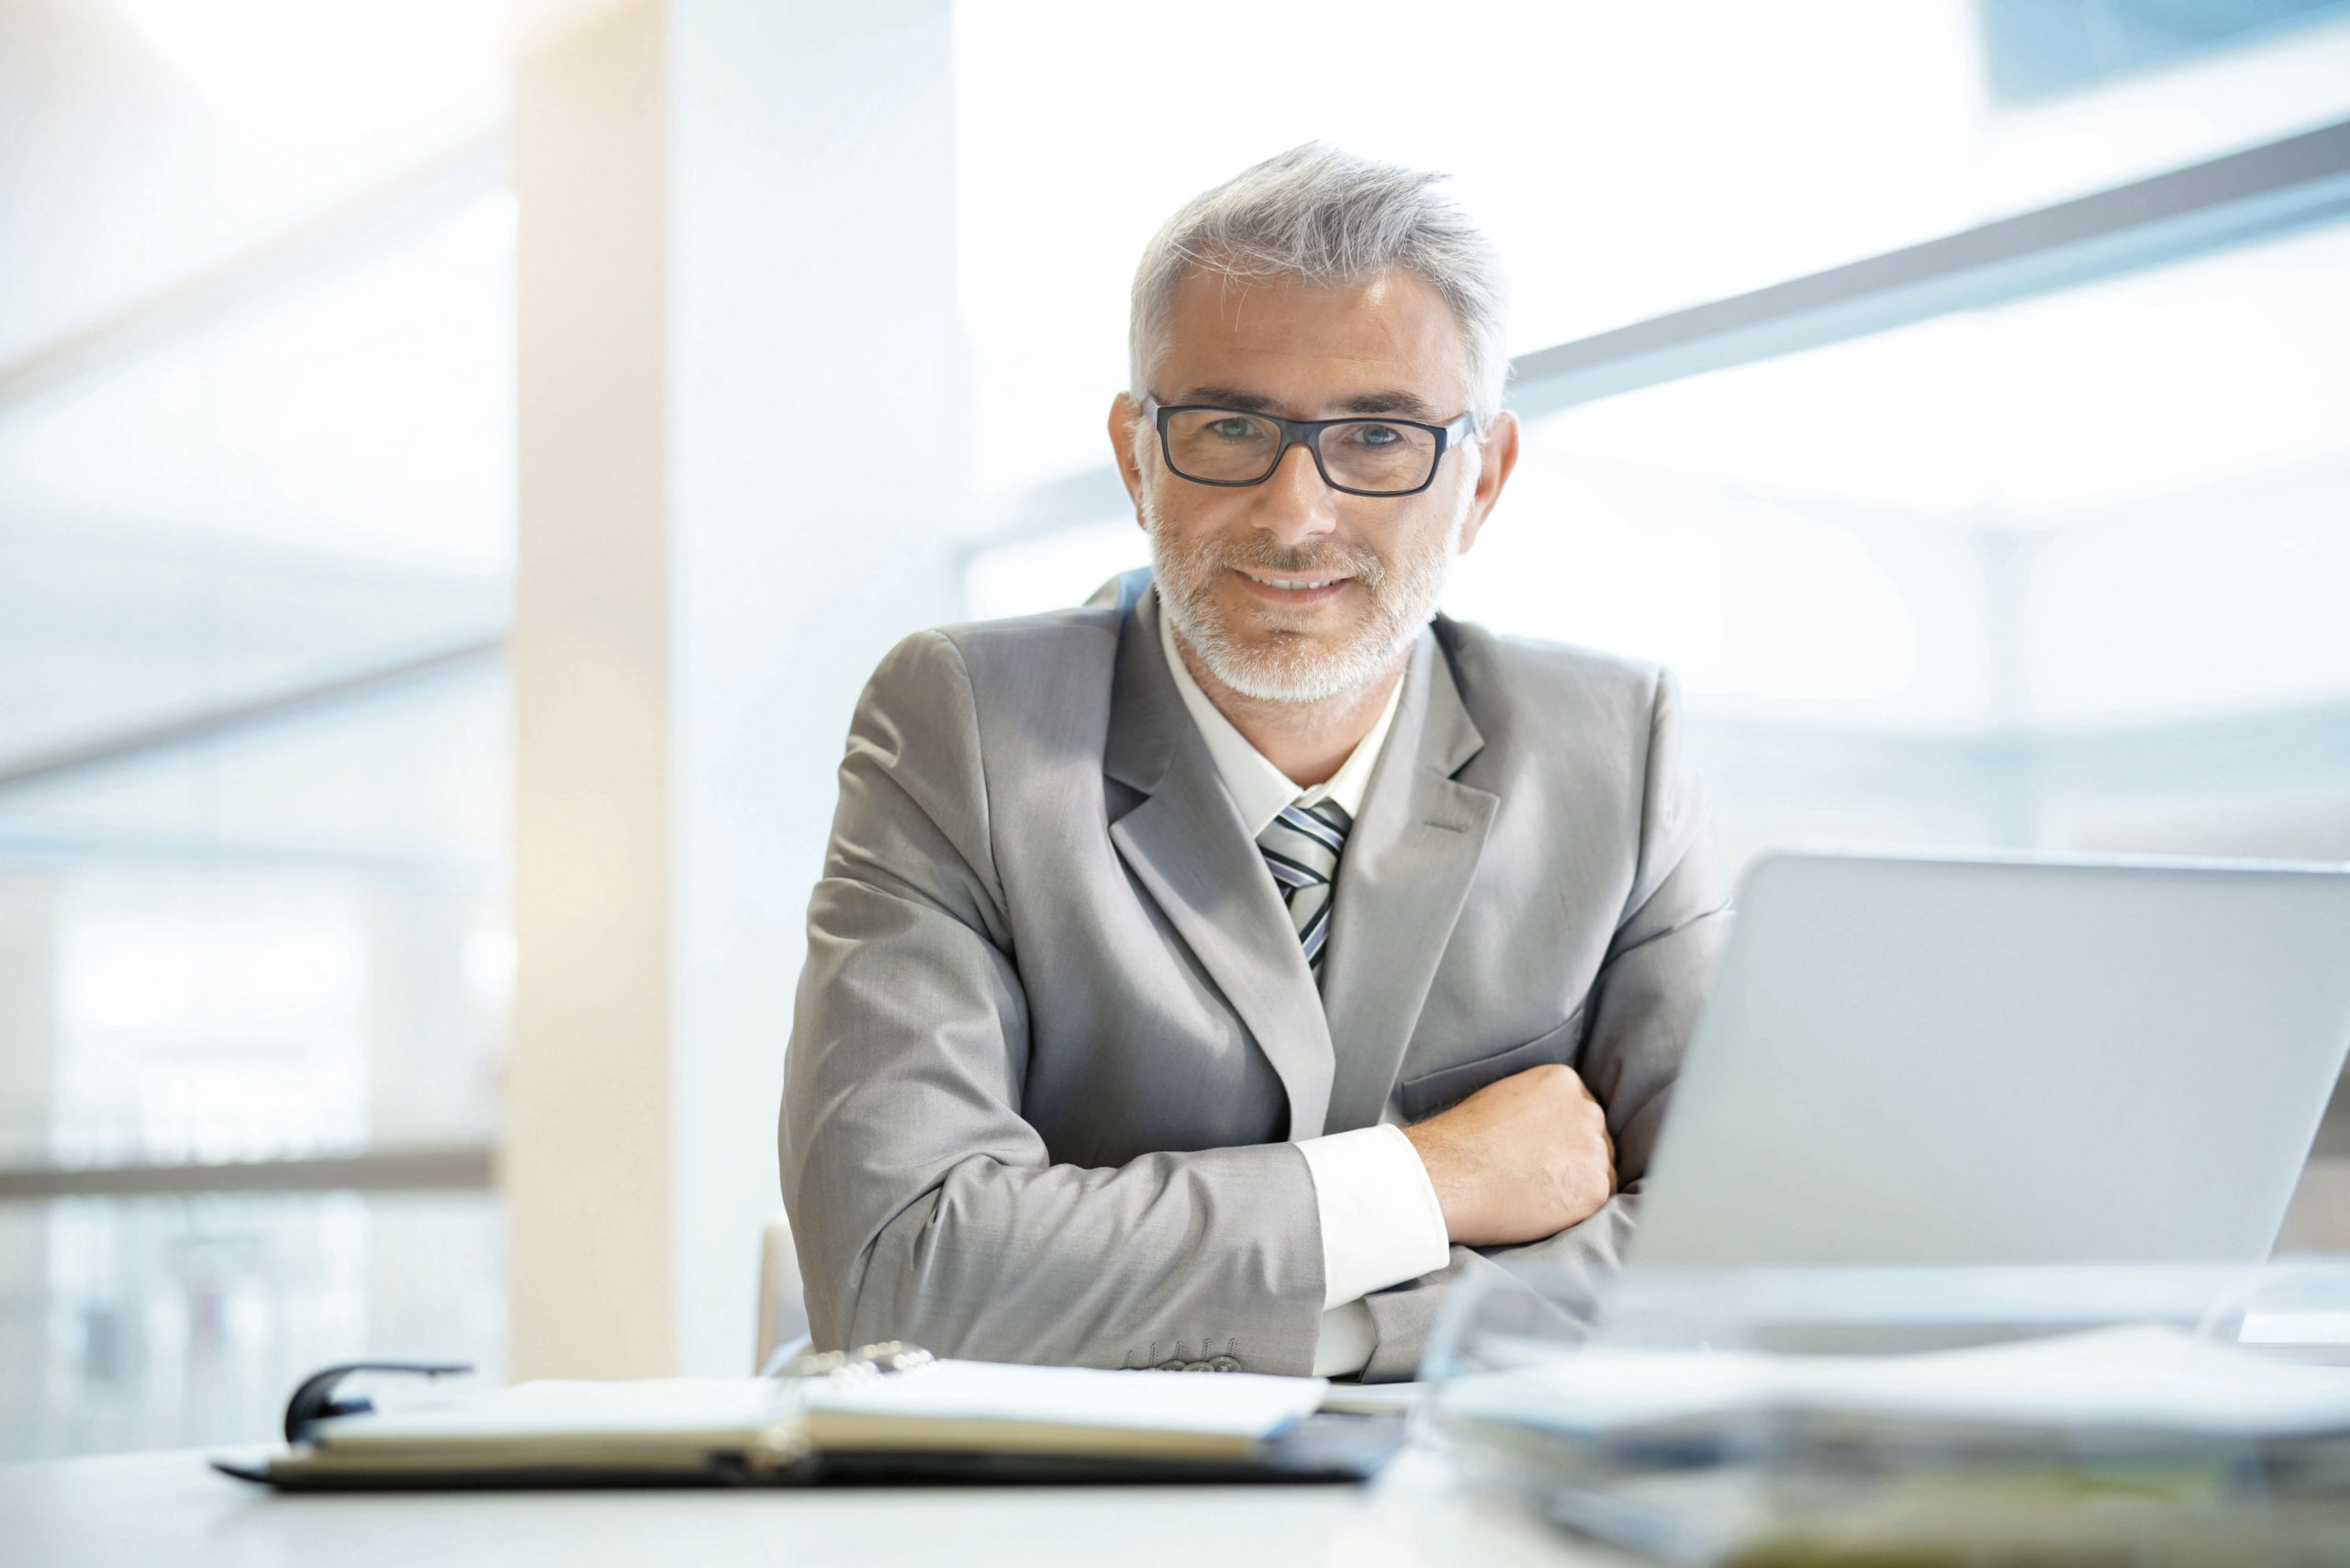 Portrait of mature businessman sitting in office looking at came